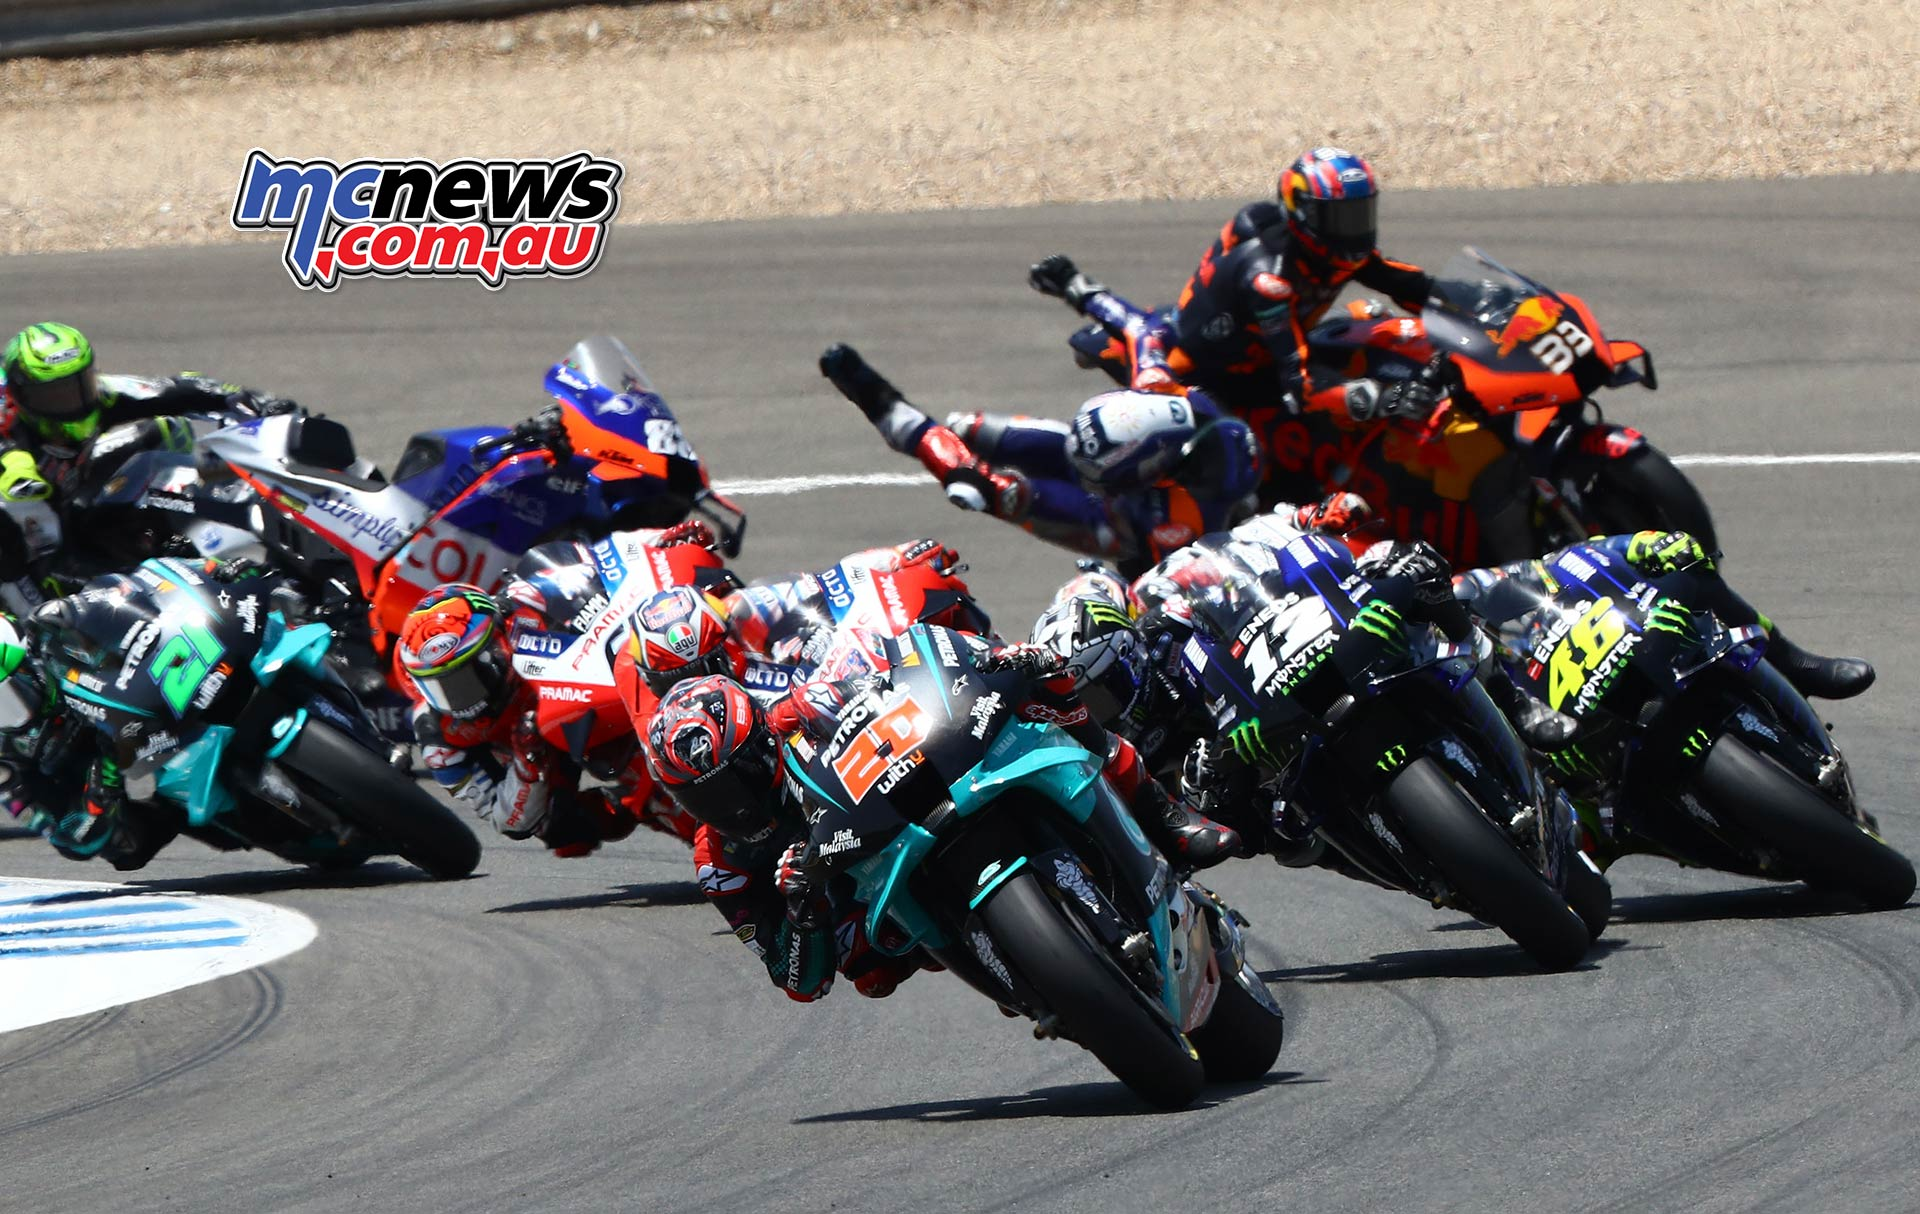 Motogp Riders Reflect On Gran Premio Red Bull De Andalucia Motorcycle News Sport And Reviews